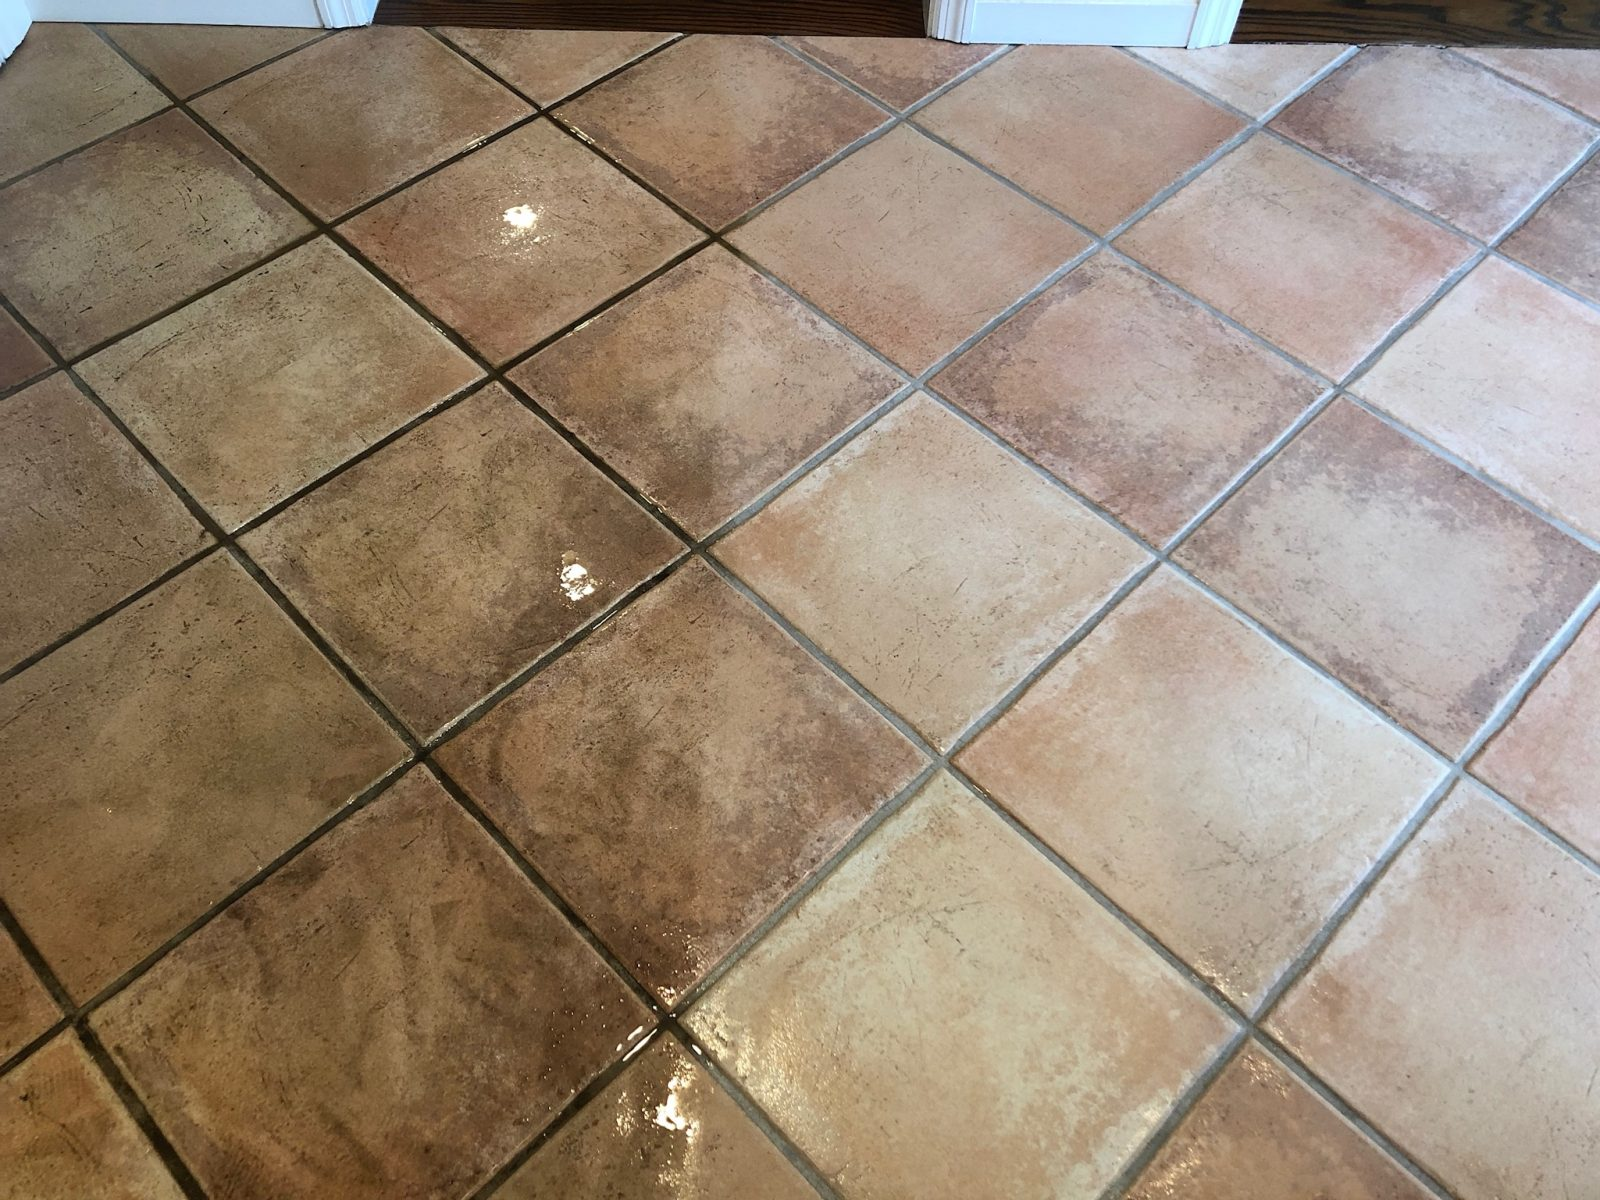 Professional Tile & Grout Cleaning Blue Ash Ohio by Howards Cleaning Service